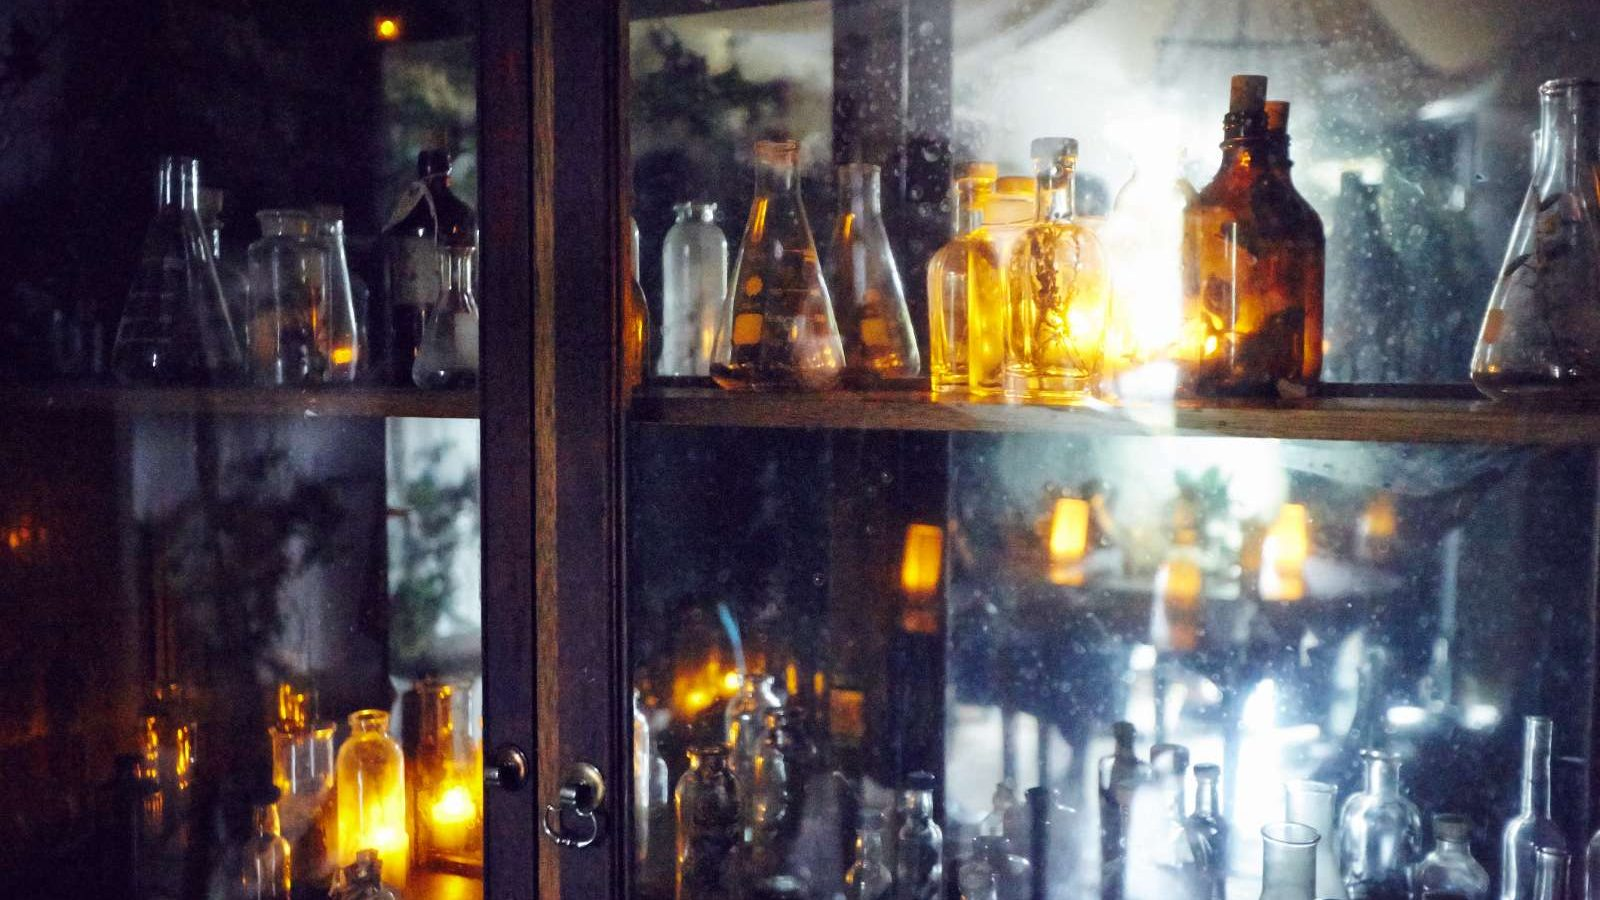 Various medicinal bottles in a glass cabinet